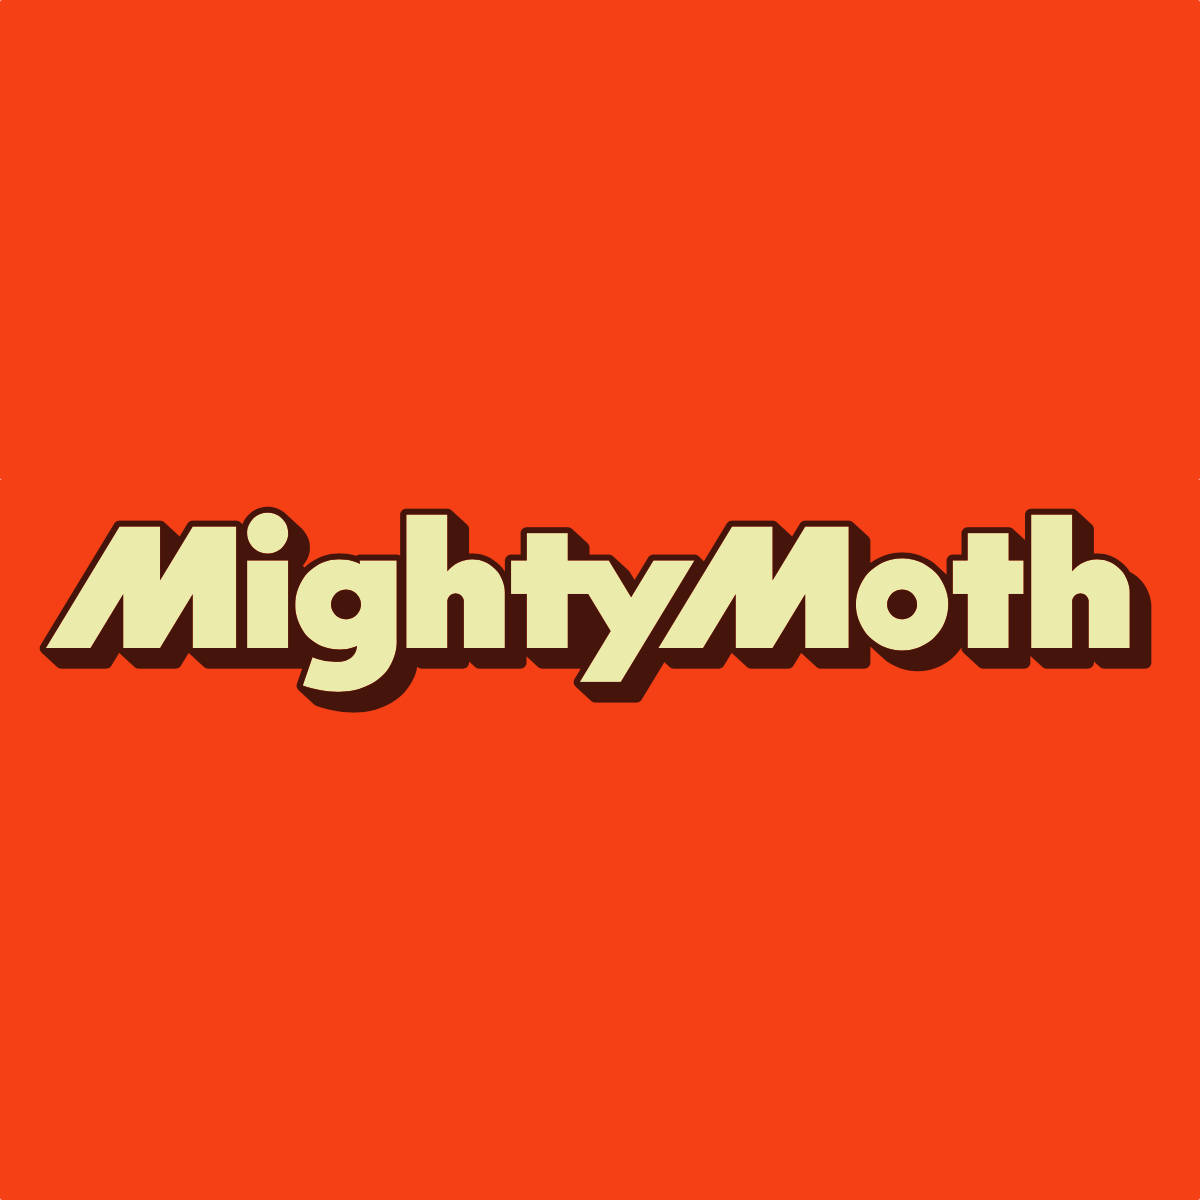 Mighty Moth